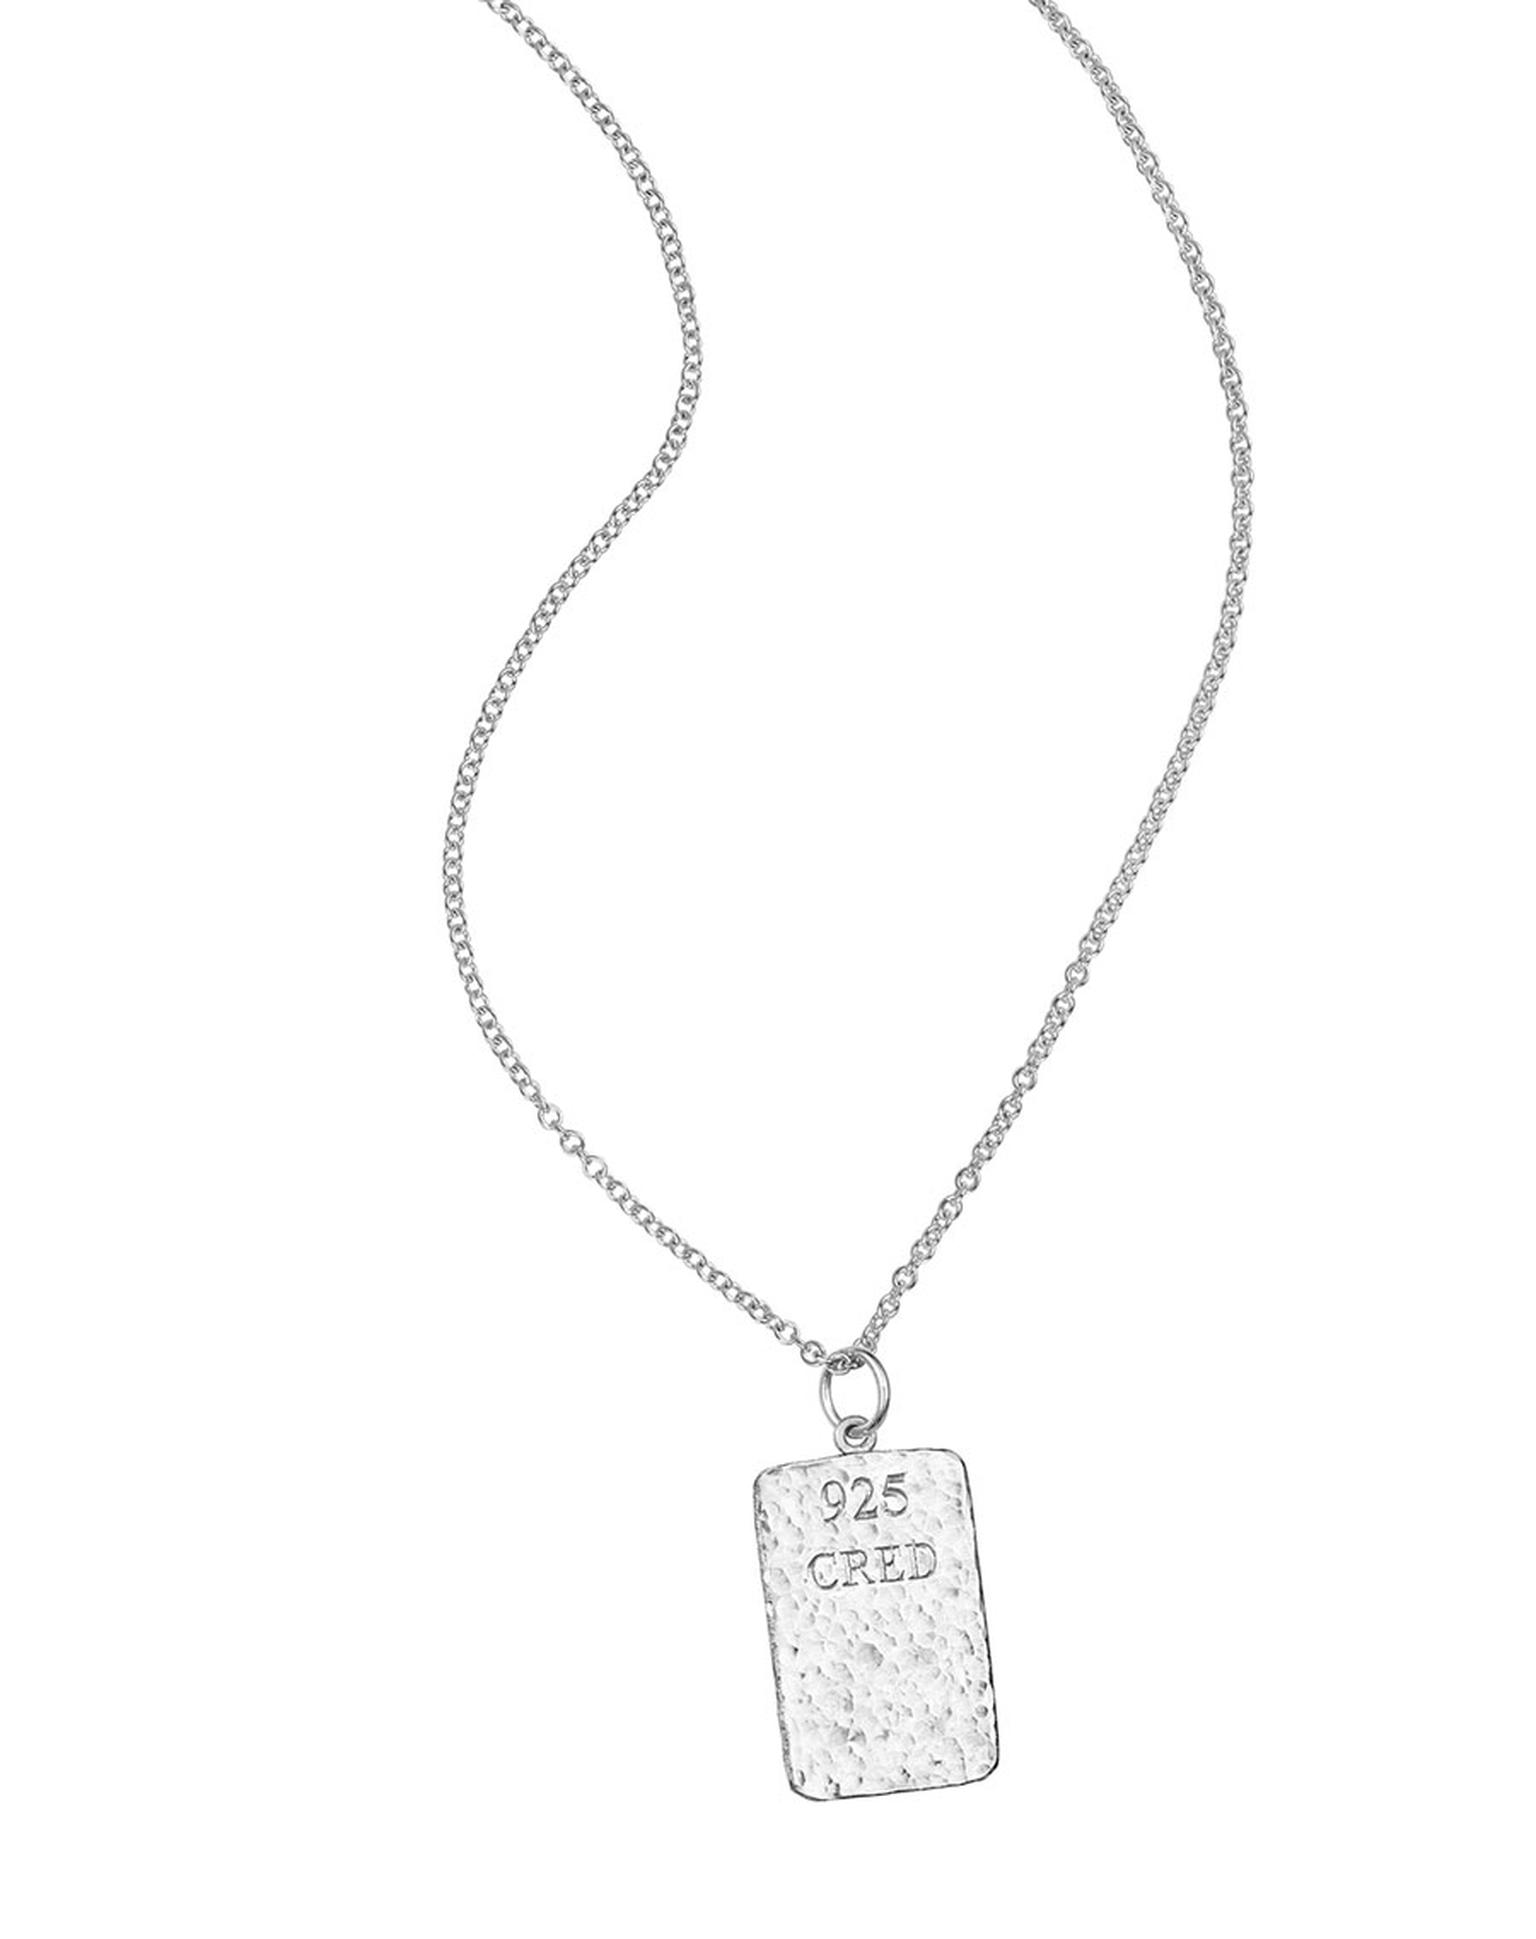 CRED-Fairtrade-Silver-Ingot--chain